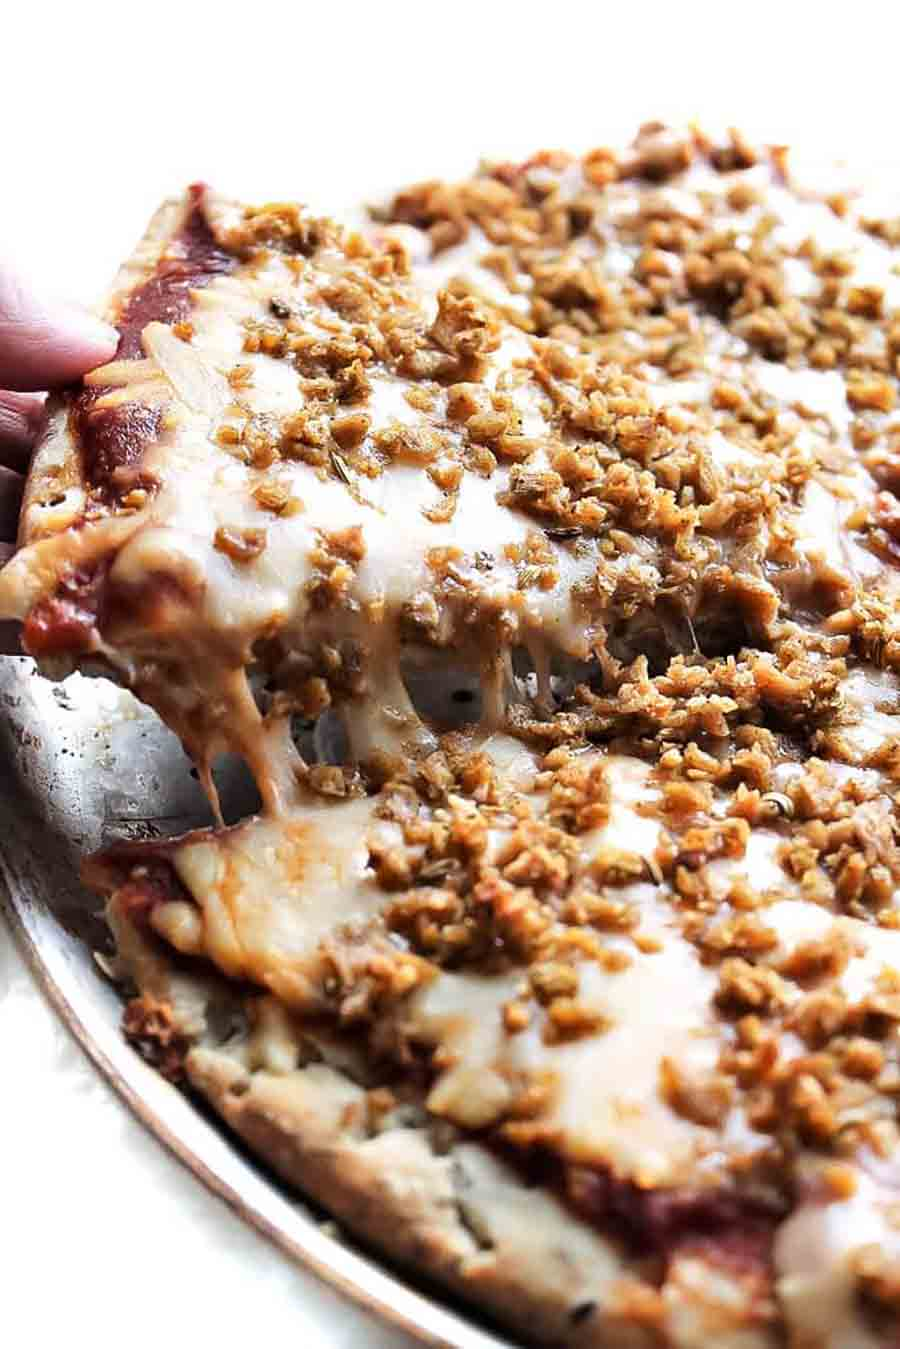 Sausage crumbles on a pizza